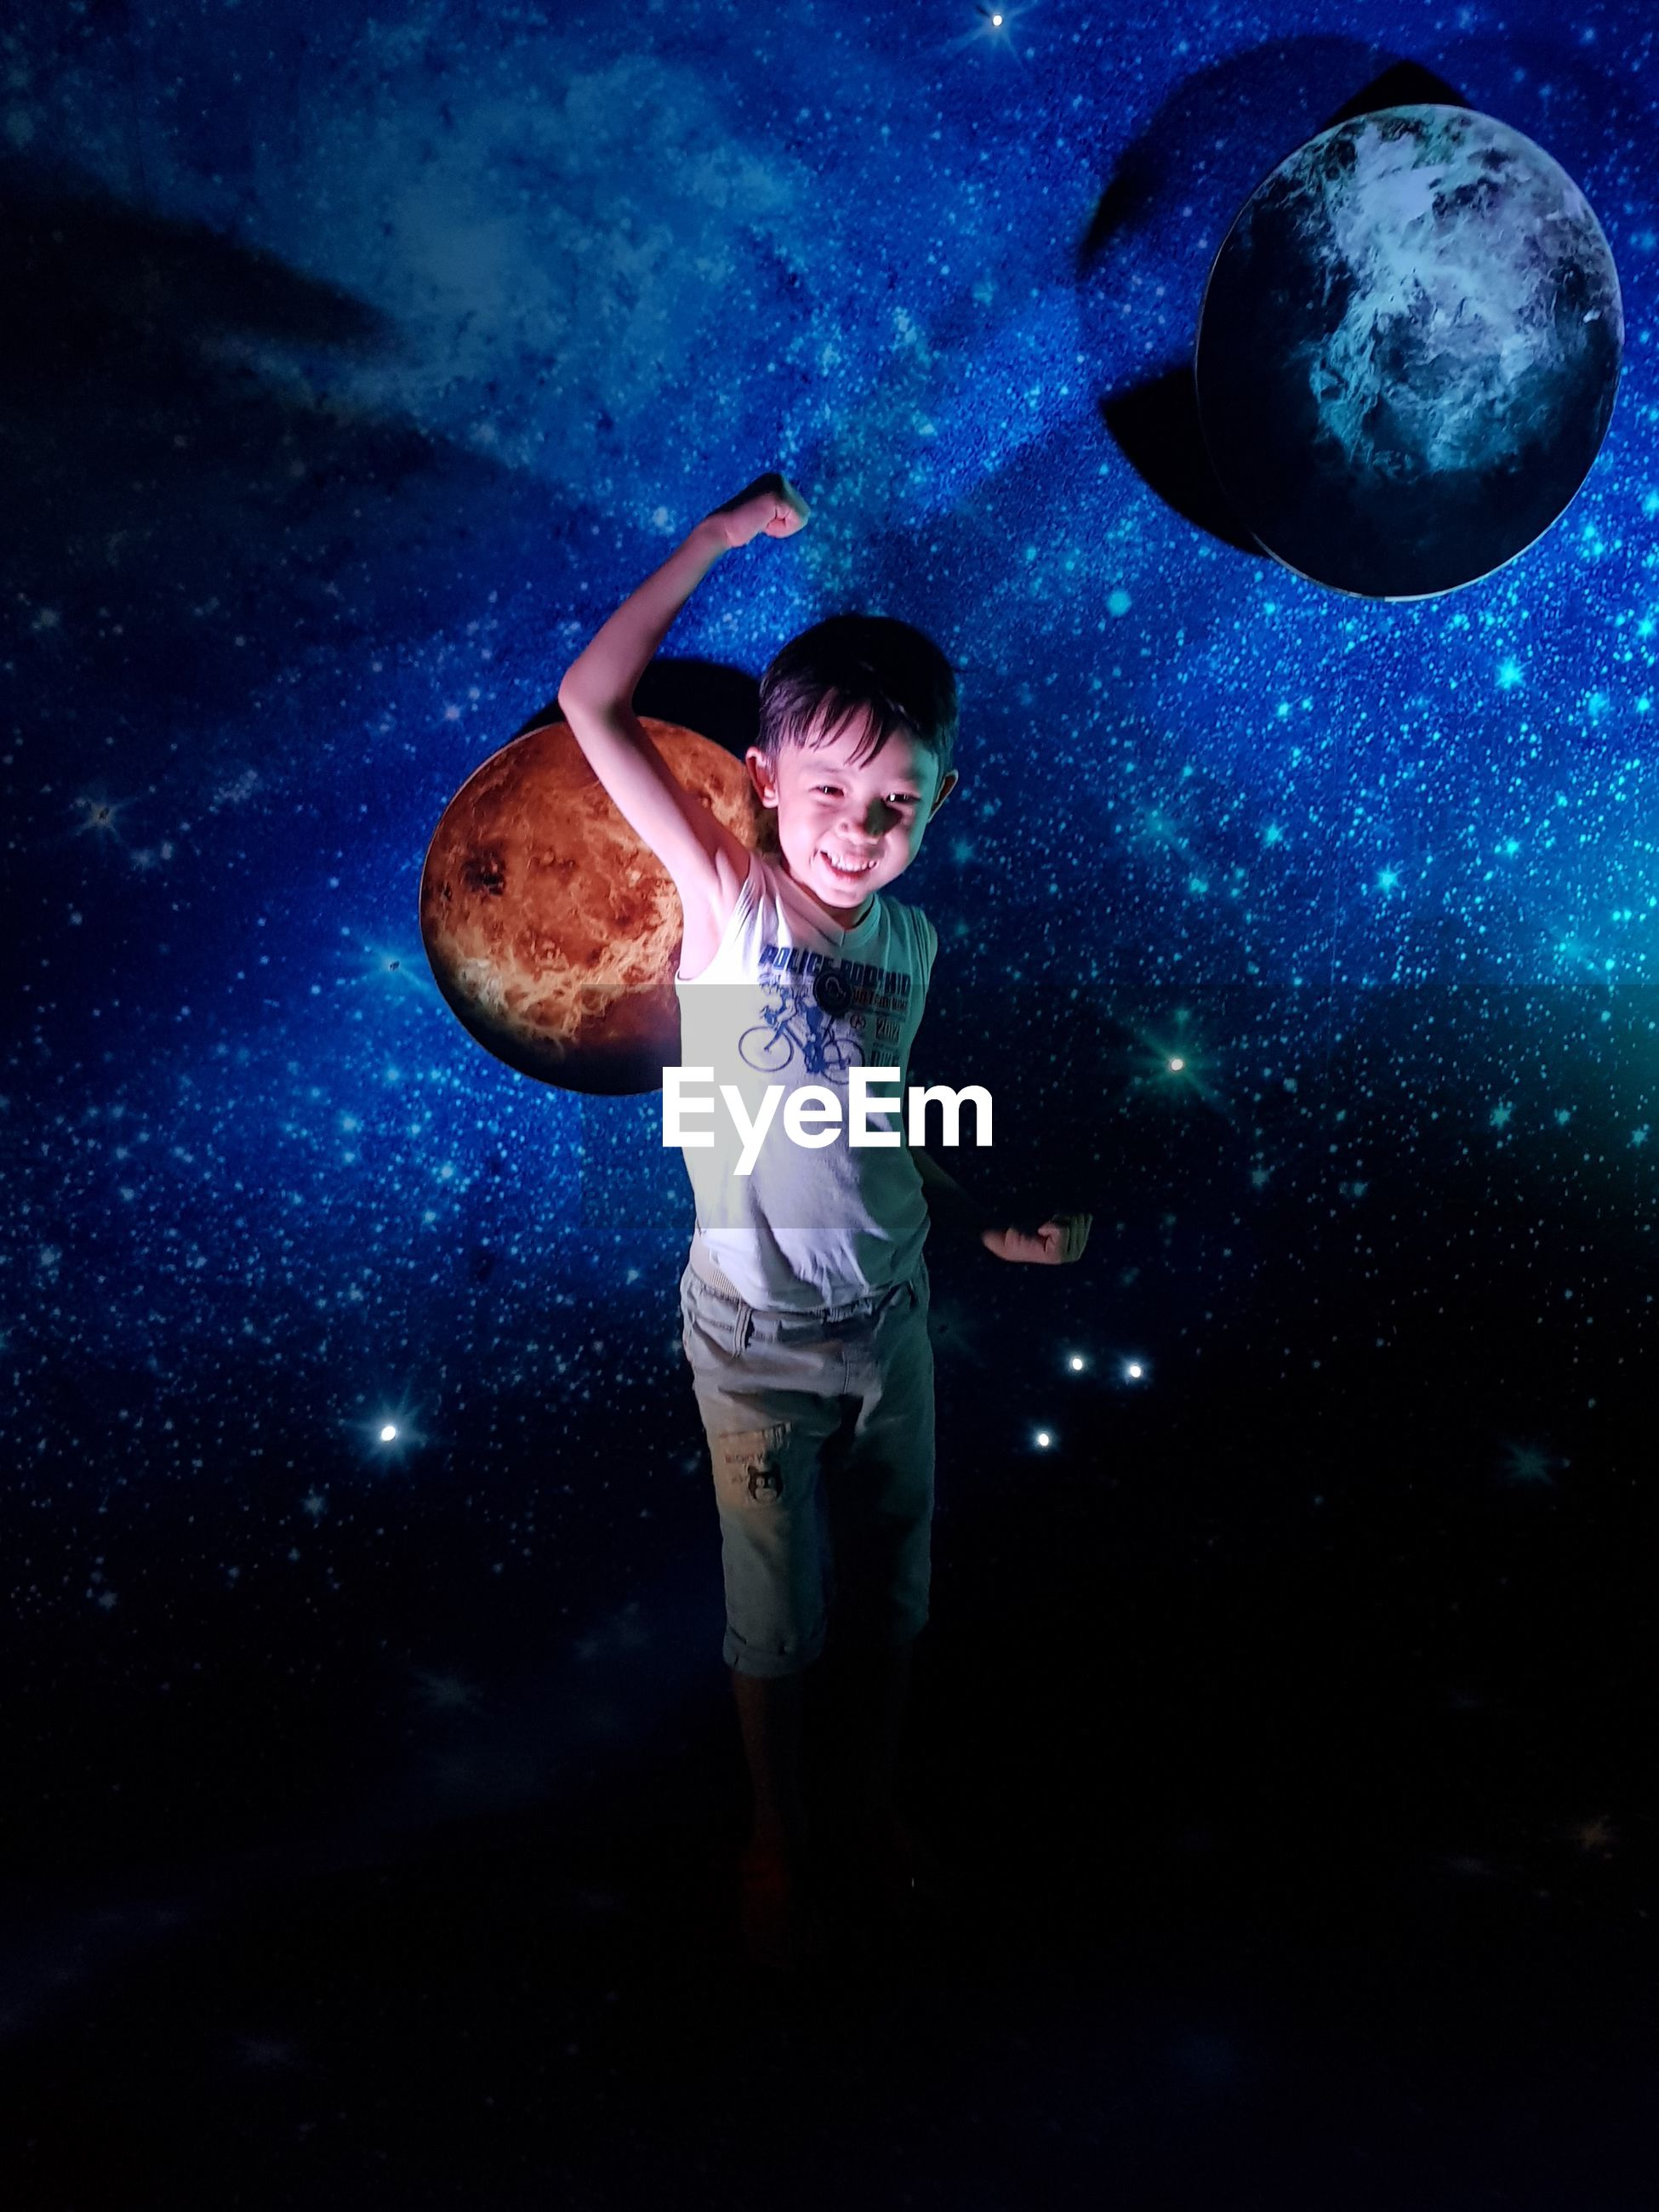 Digital composite image of boy standing against star field at night